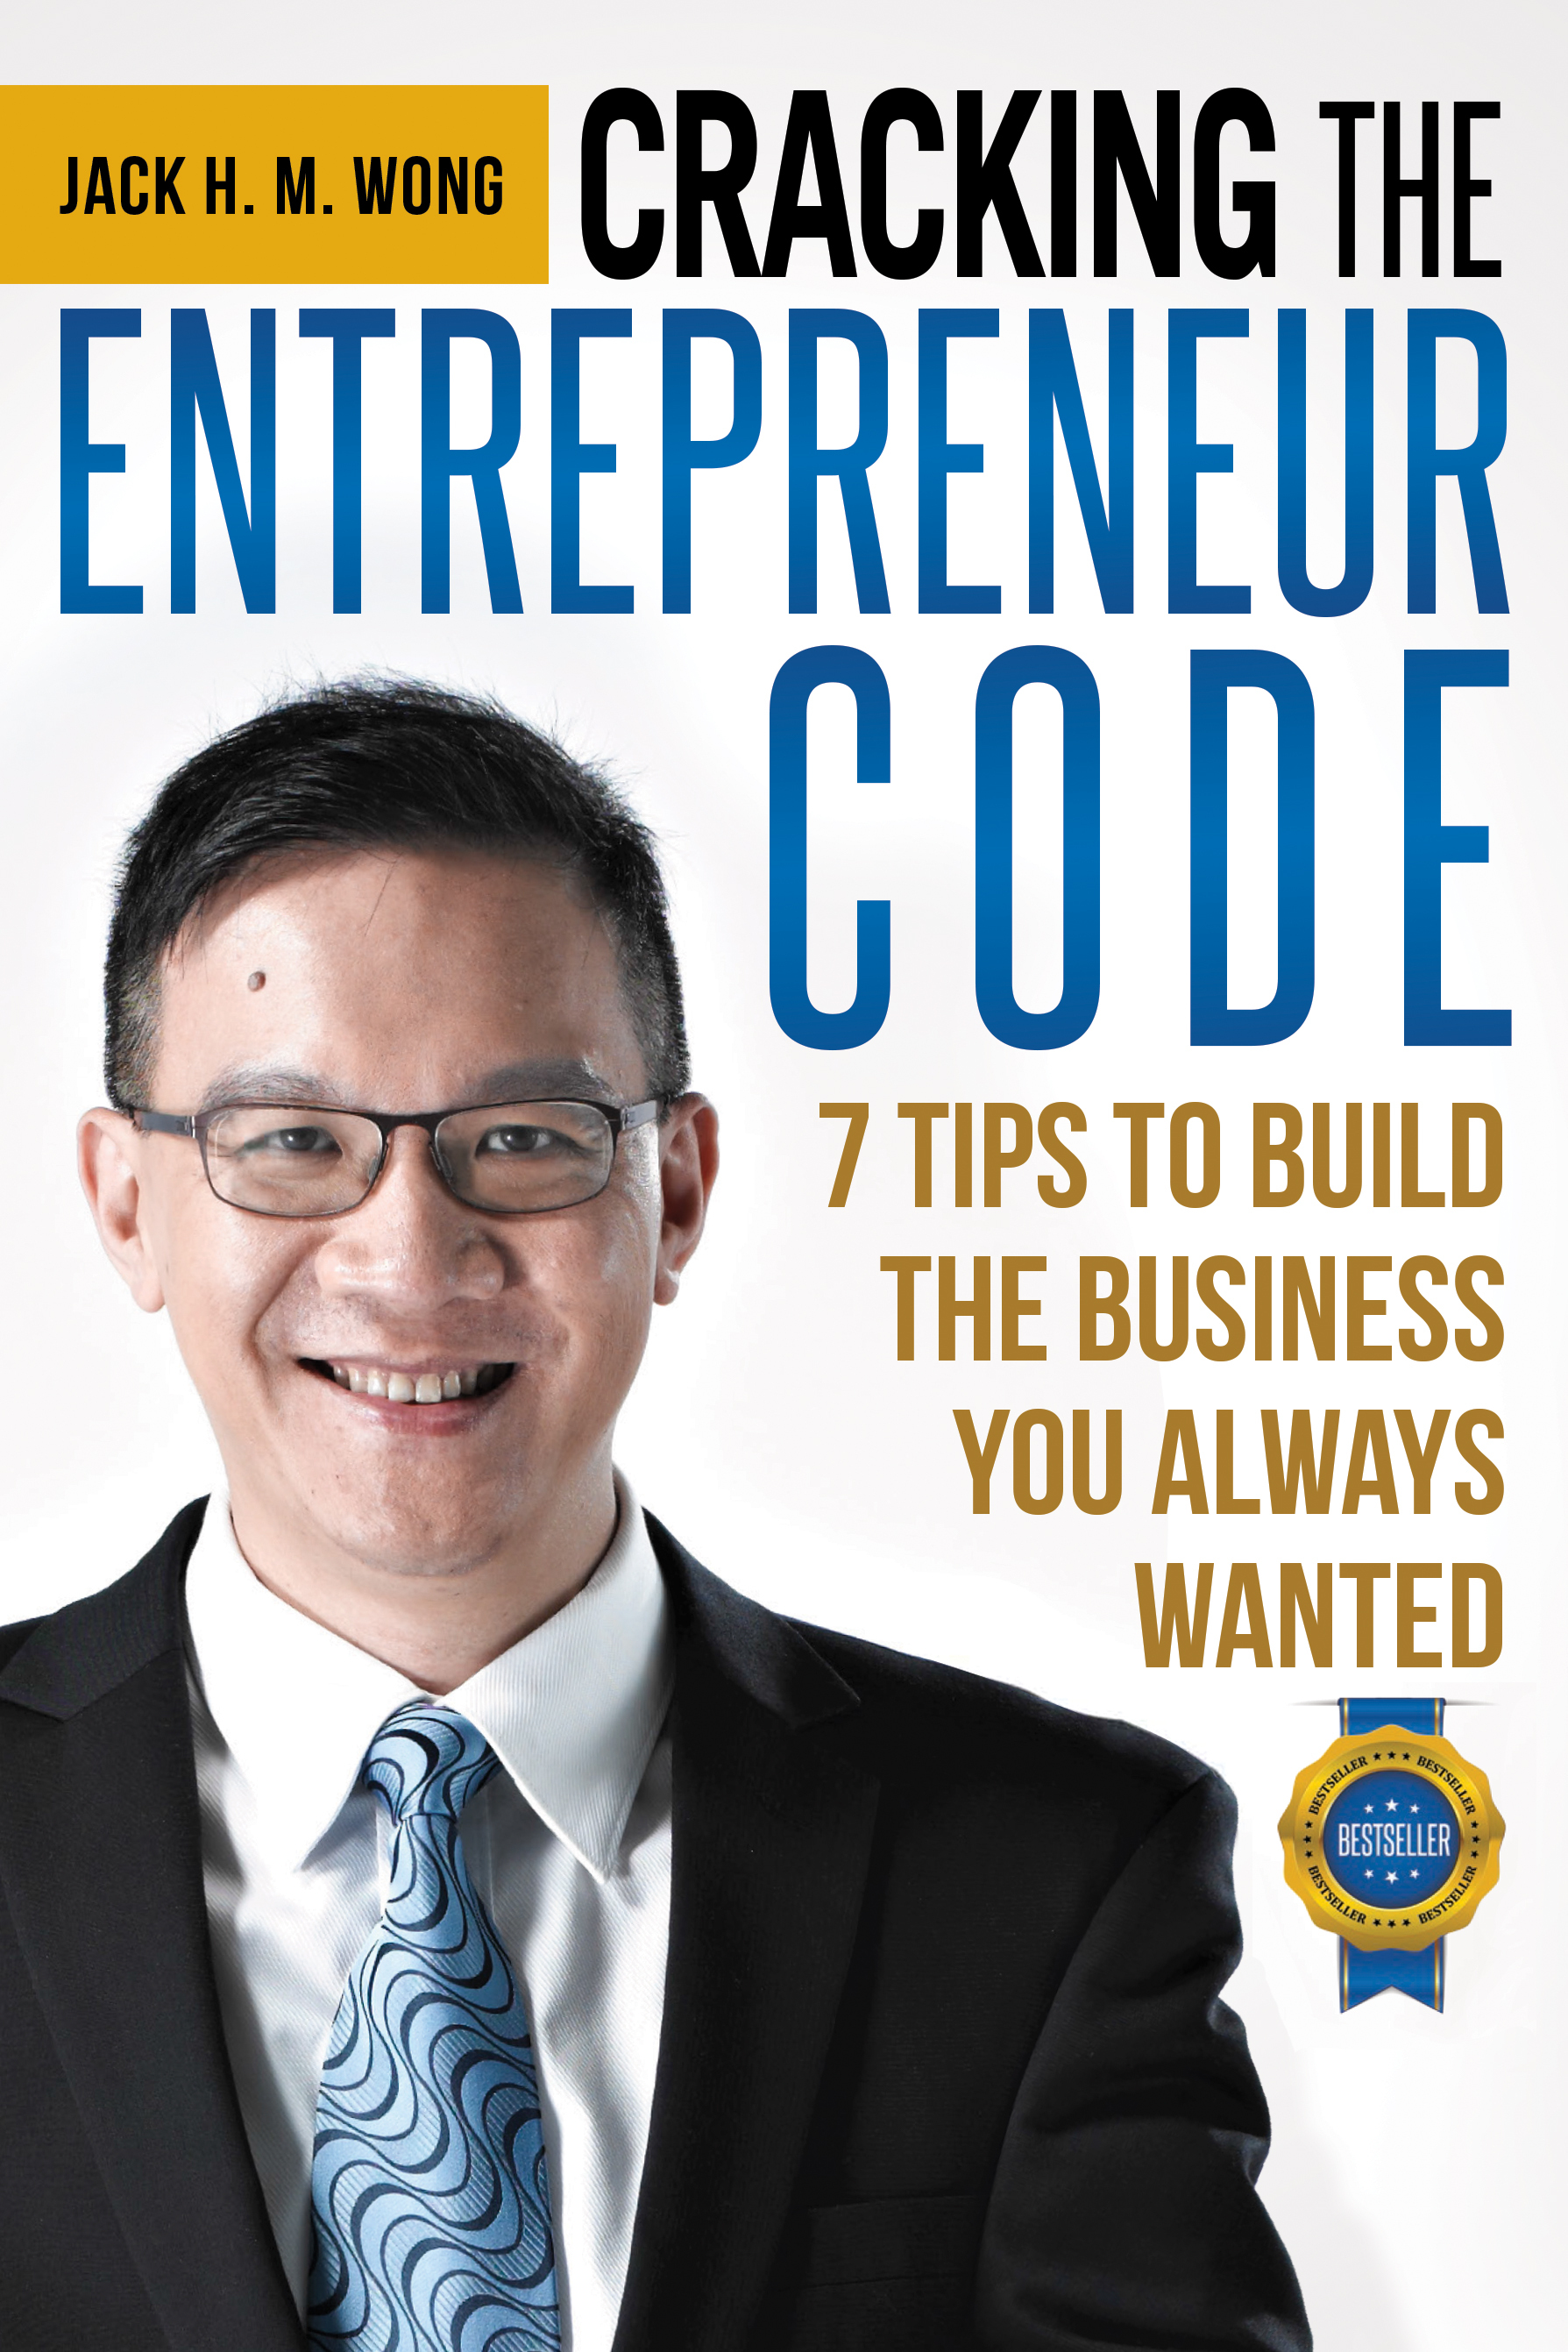 Cracking the Entrepreneur Code - 7 Tips to Build The Business You Always Wanted Jack HM Wong